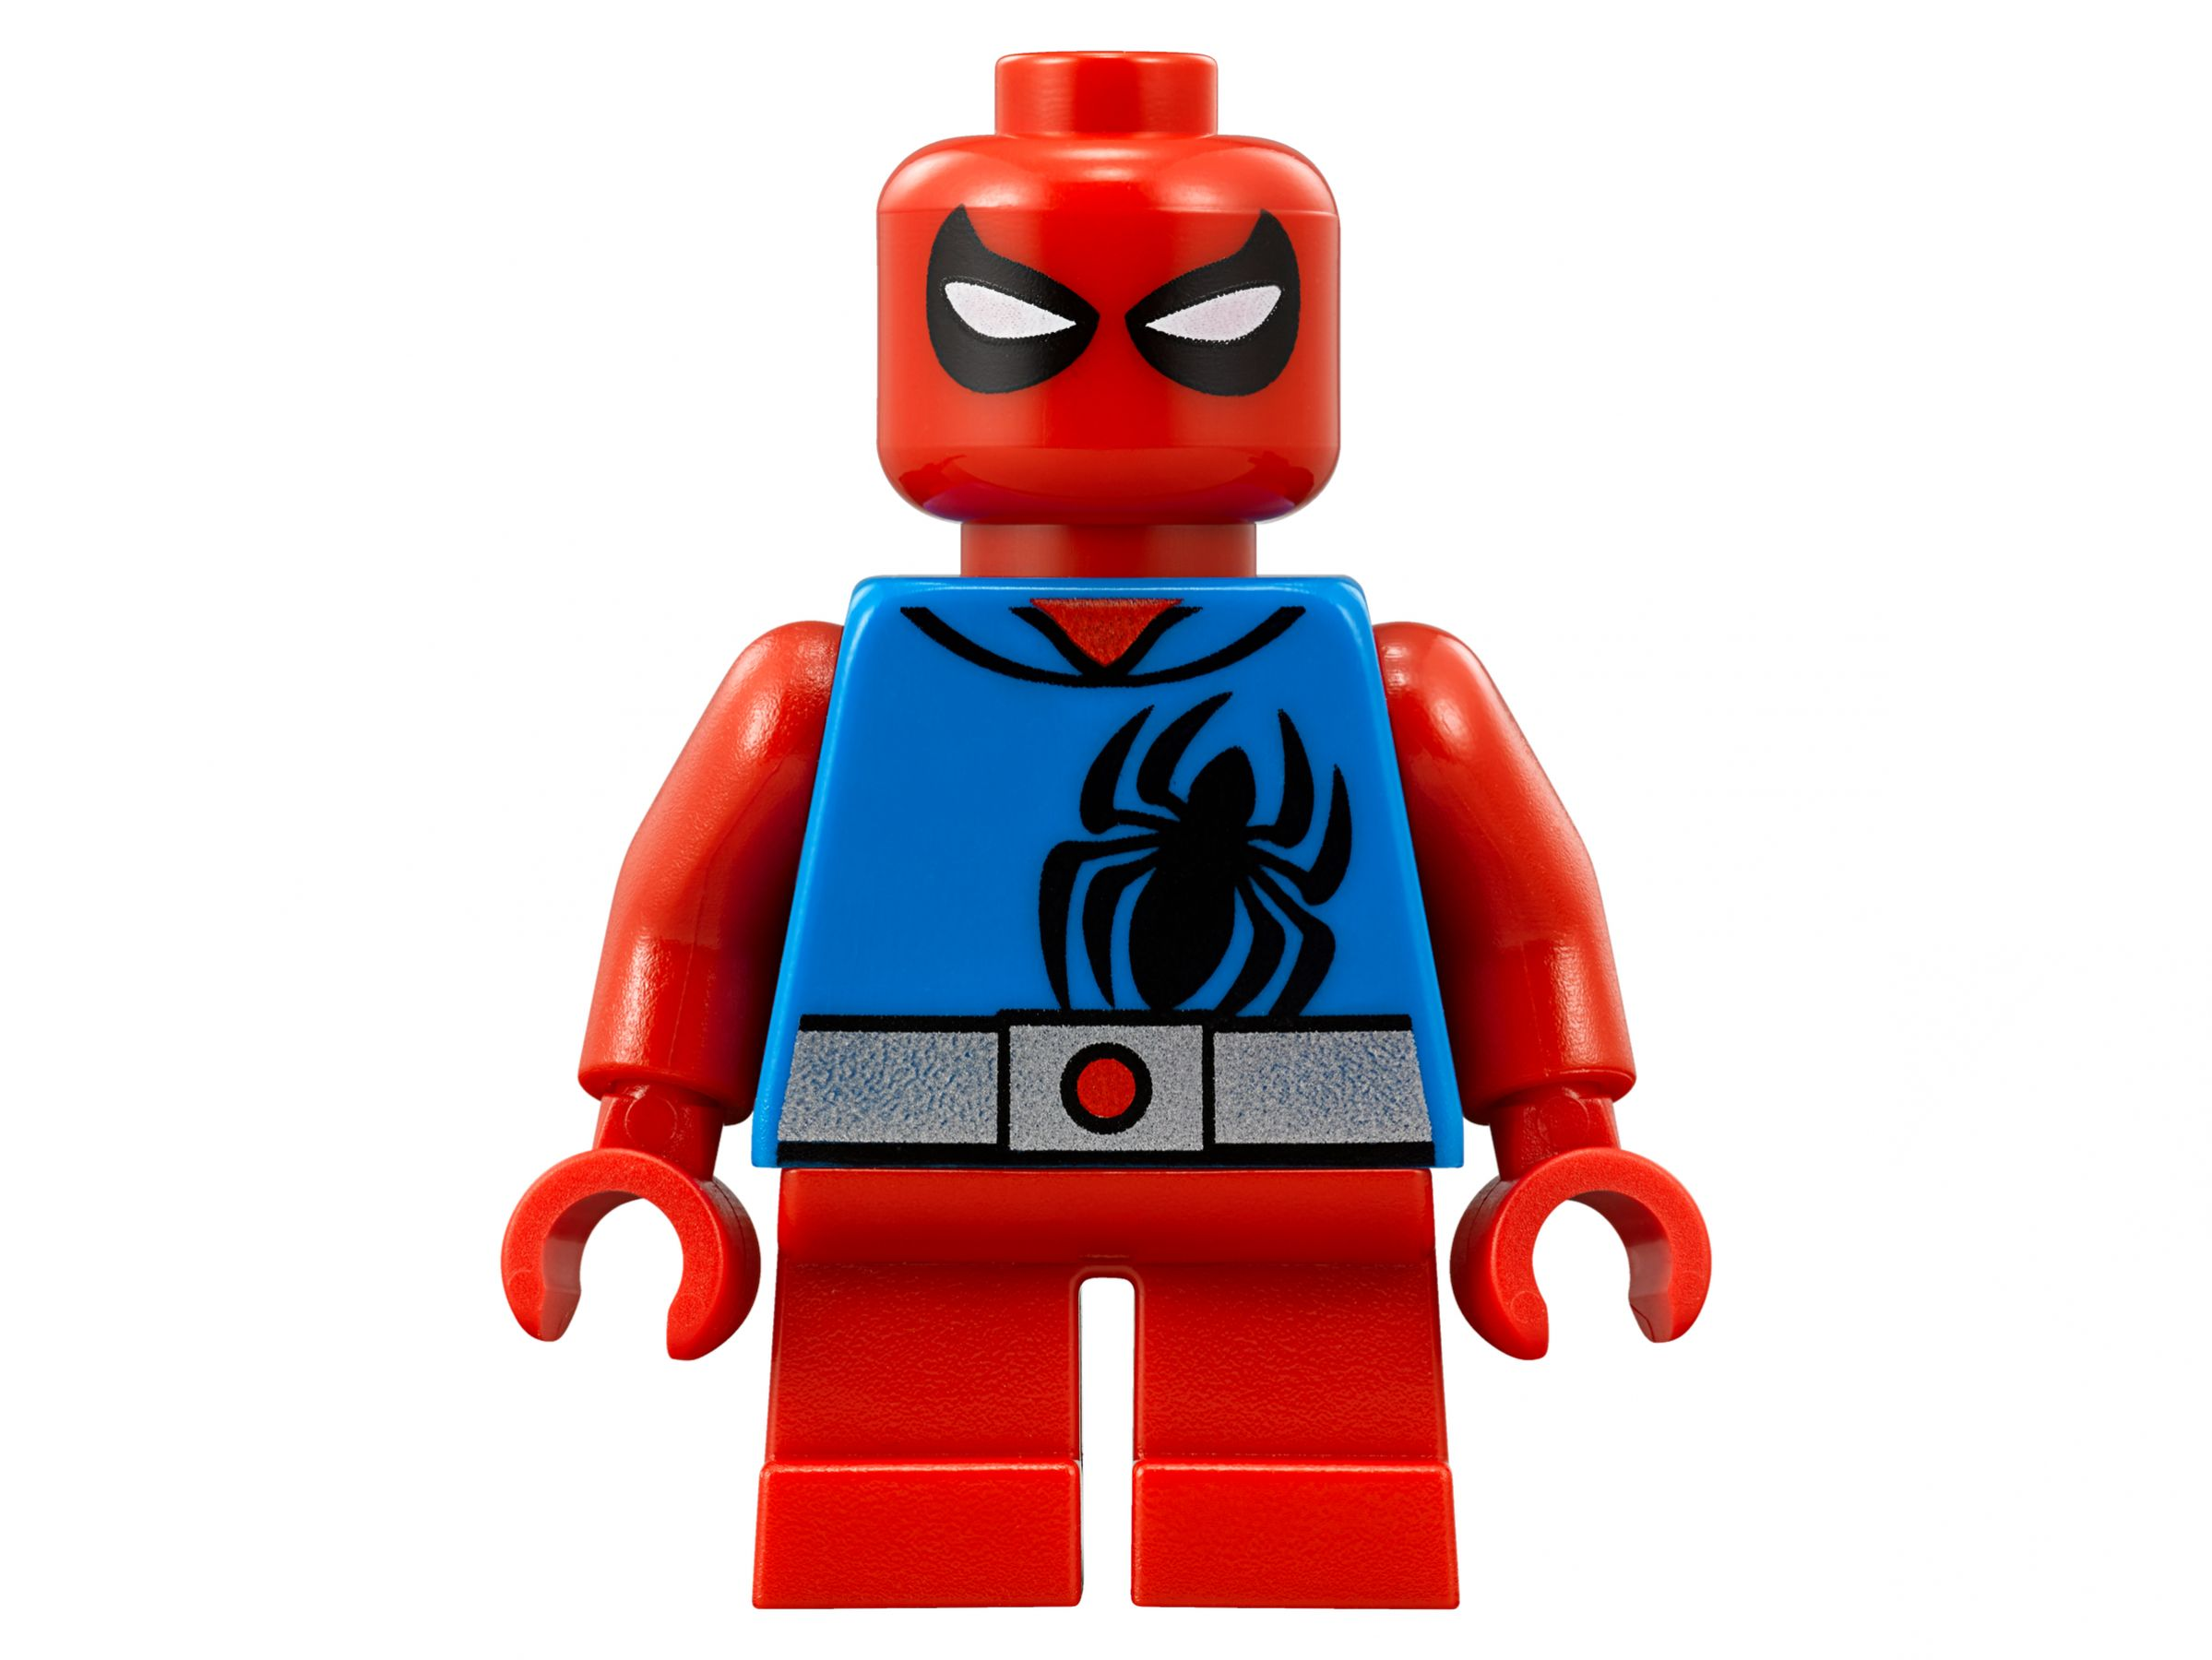 LEGO Super Heroes 76089 Mighty Micros: Spider-Man vs. Sandman LEGO_76089_alt6.jpg